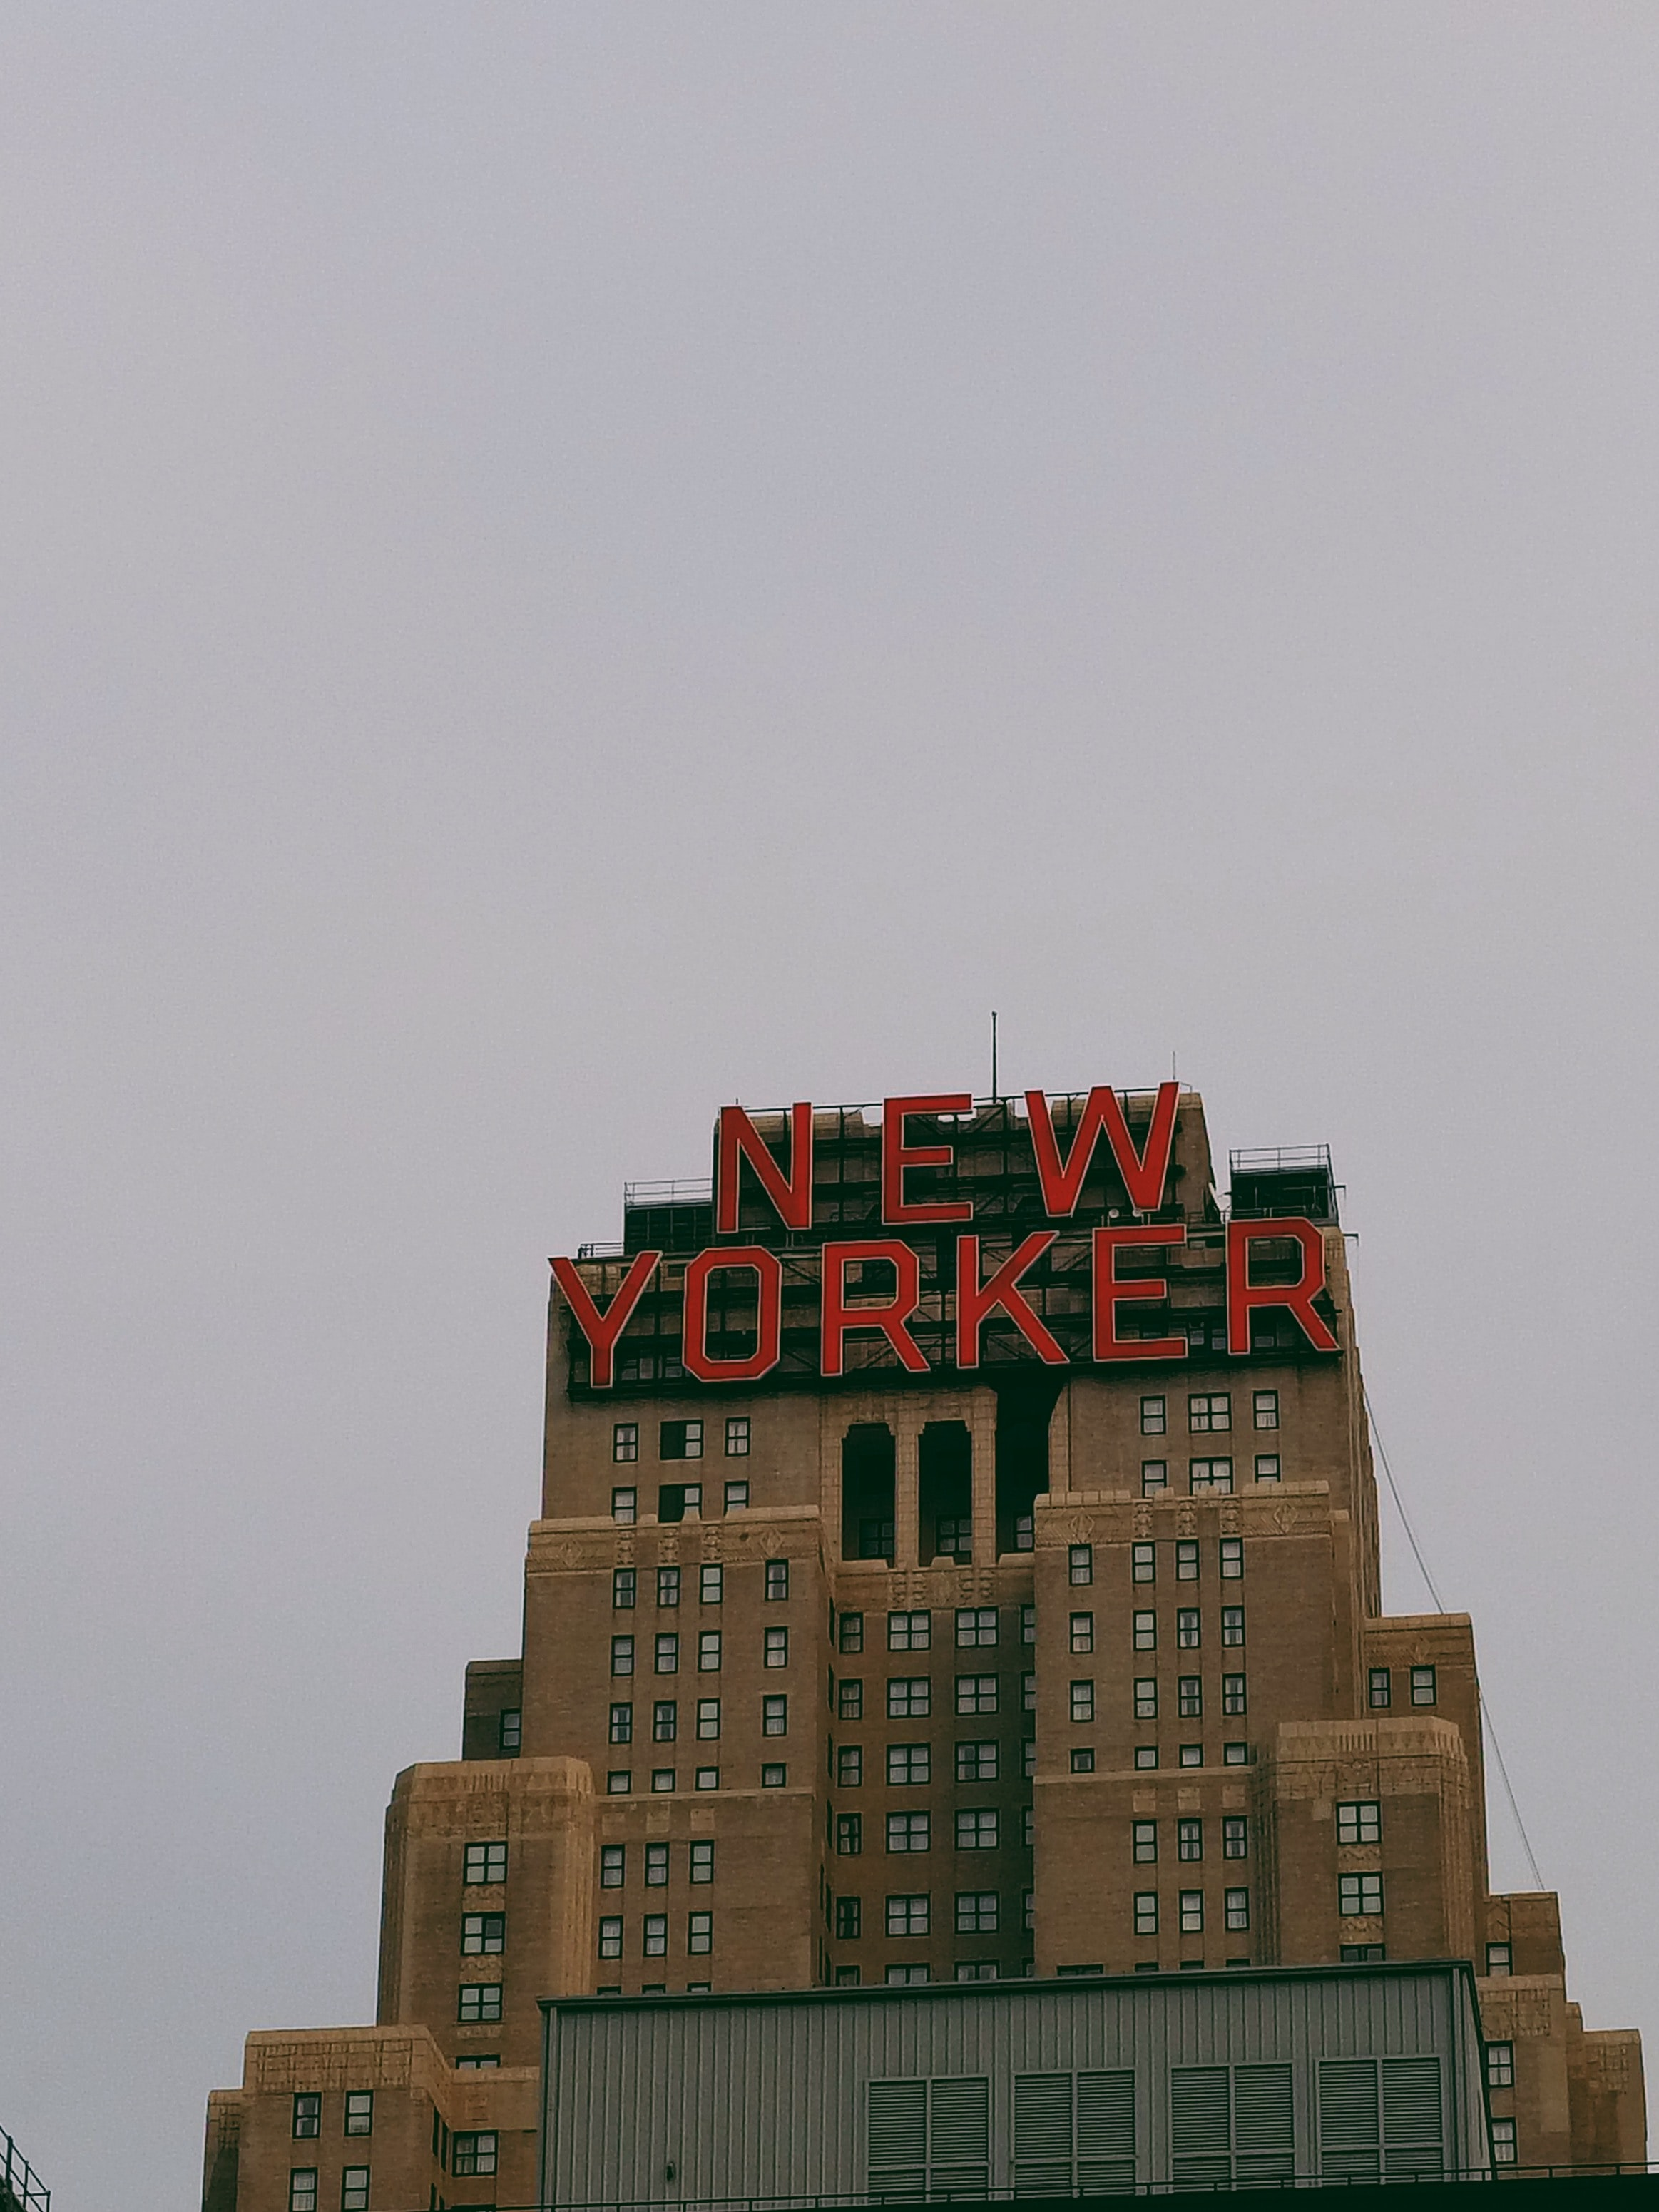 New Yorker building during daytime